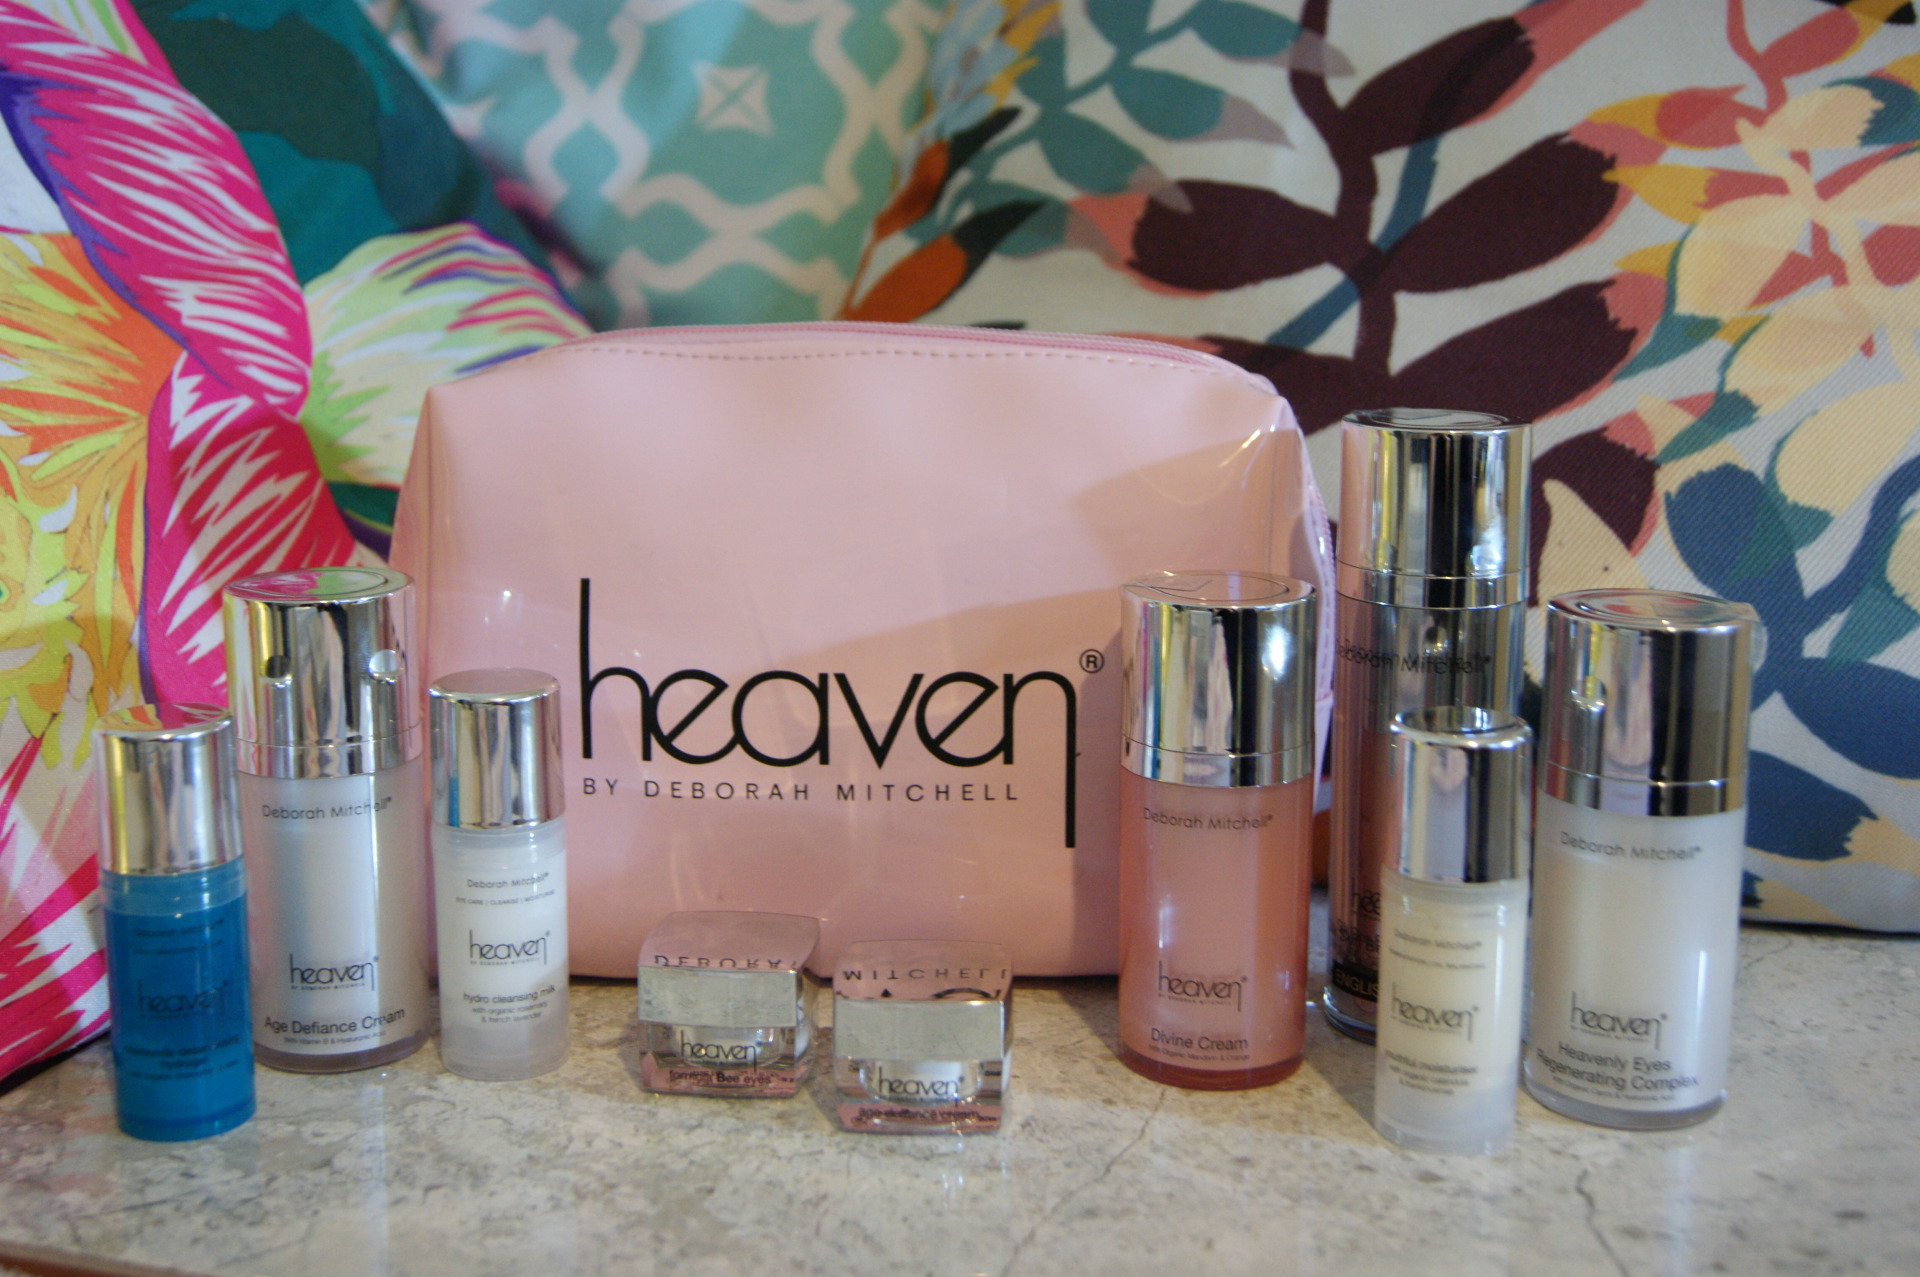 Heaven Skincare - Gift Bag